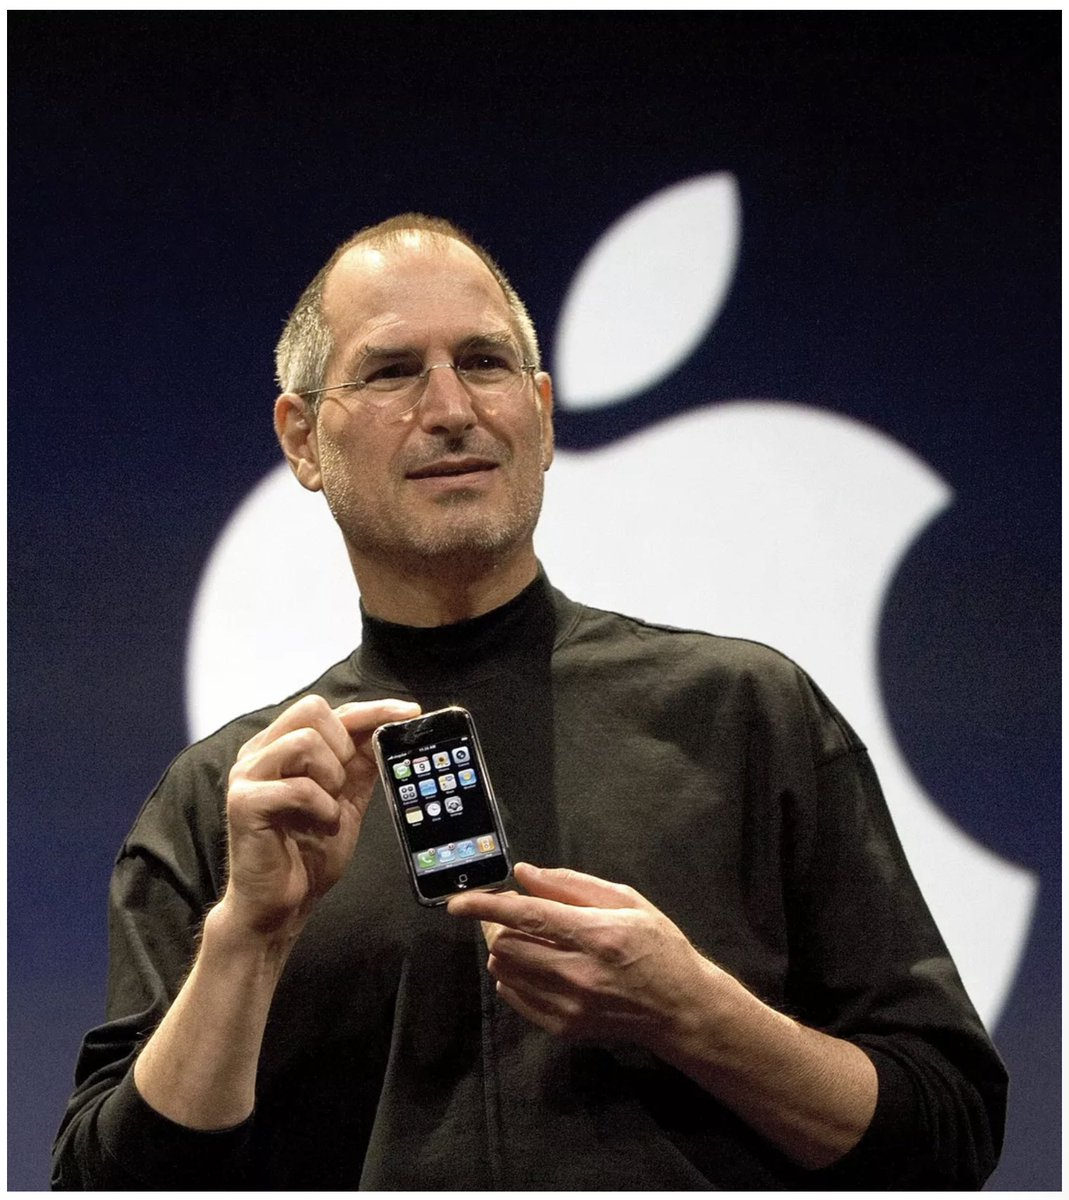 """Today is the 13th anniversary iPhone announcement—easily one of the greatest launch events and moments of technology change in history. What was the """"world"""" like at the time? When something changes the world so much it seems obvious in hindsight. That was not at all the case. 1/ https://t.co/ZR3g7UkWEn"""